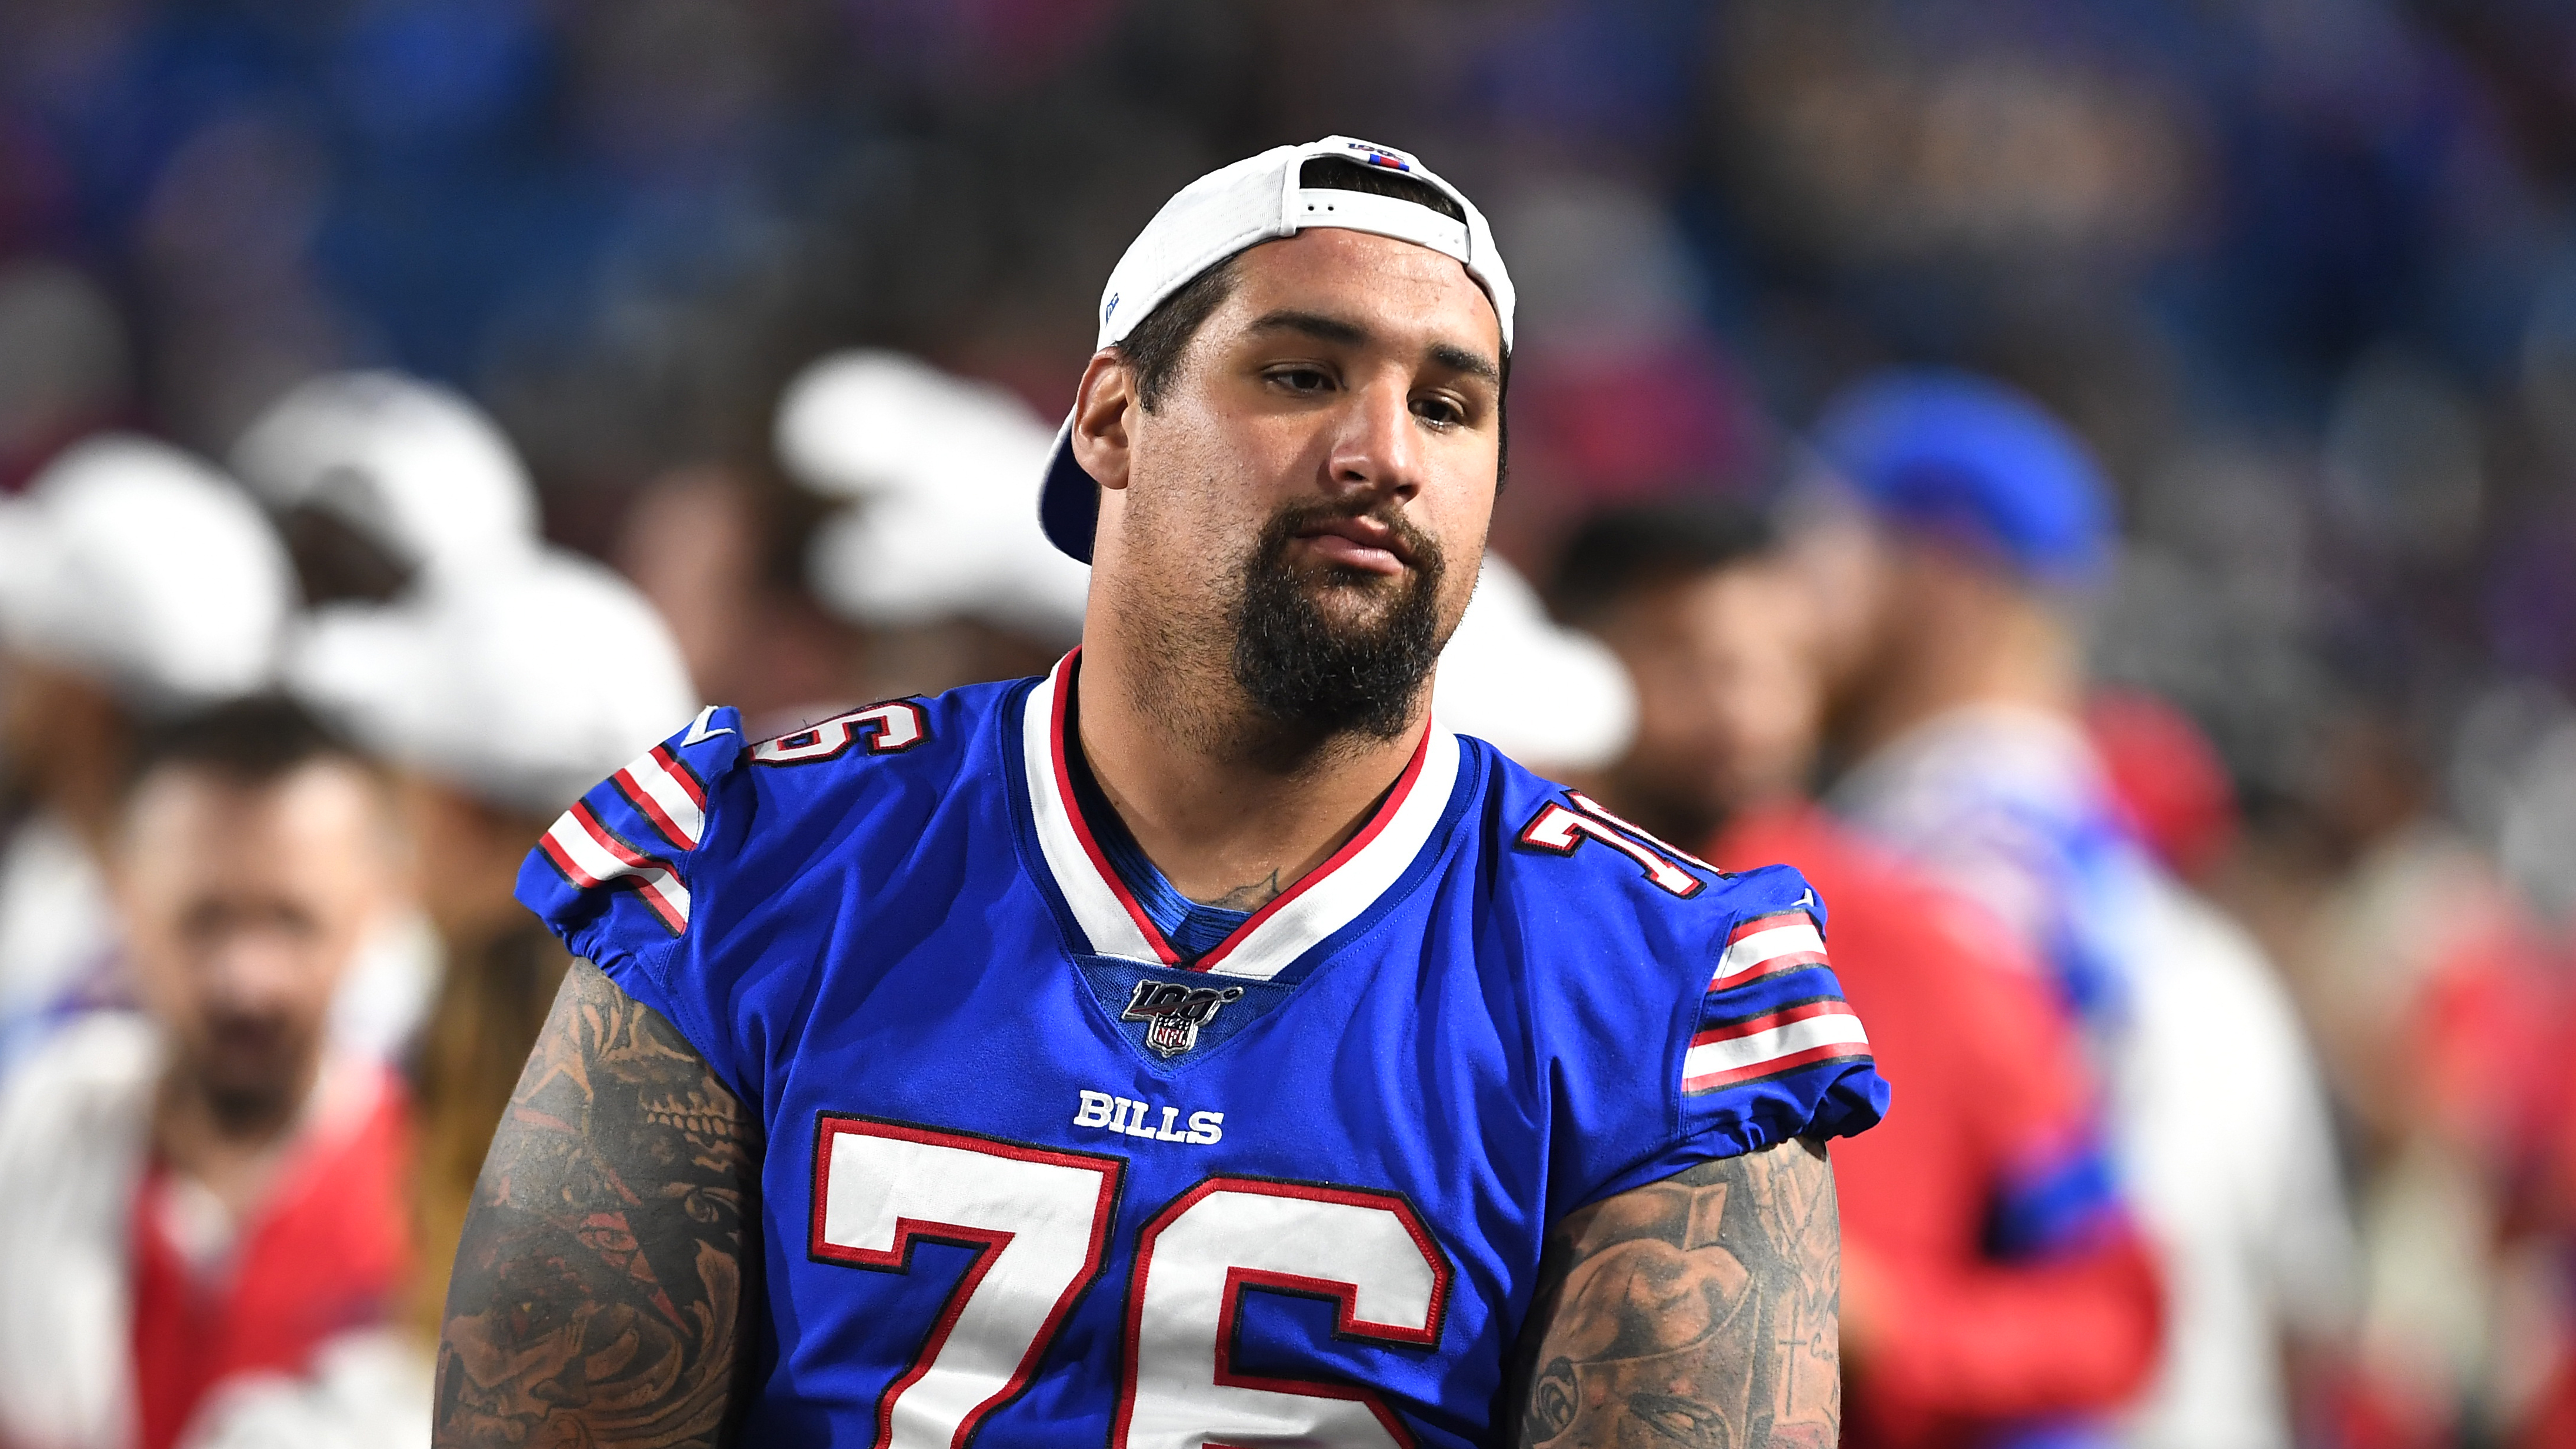 Jon Feliciano brings 'controlled chaos' to Buffalo Bills o-line: 'He plays with a mean streak and swagger'